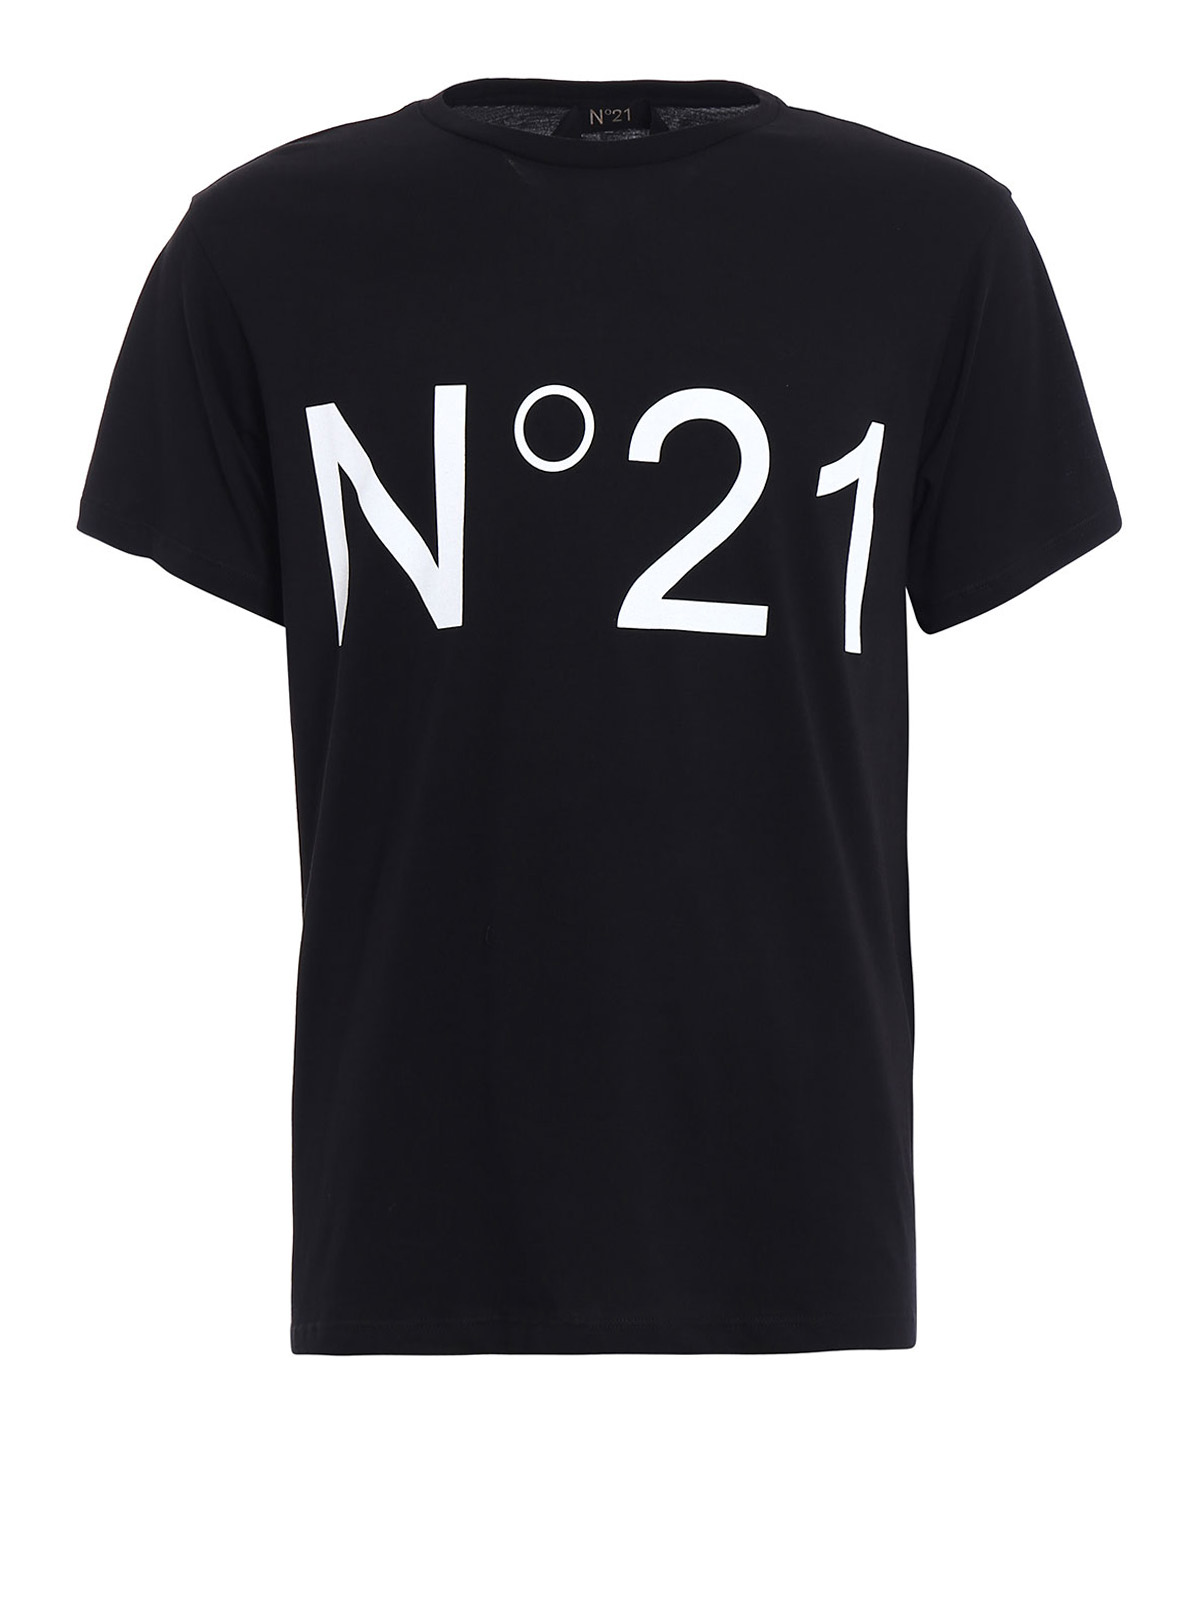 Logo print black cotton tee by n 21 t shirts ikrix for Shirts with logo print